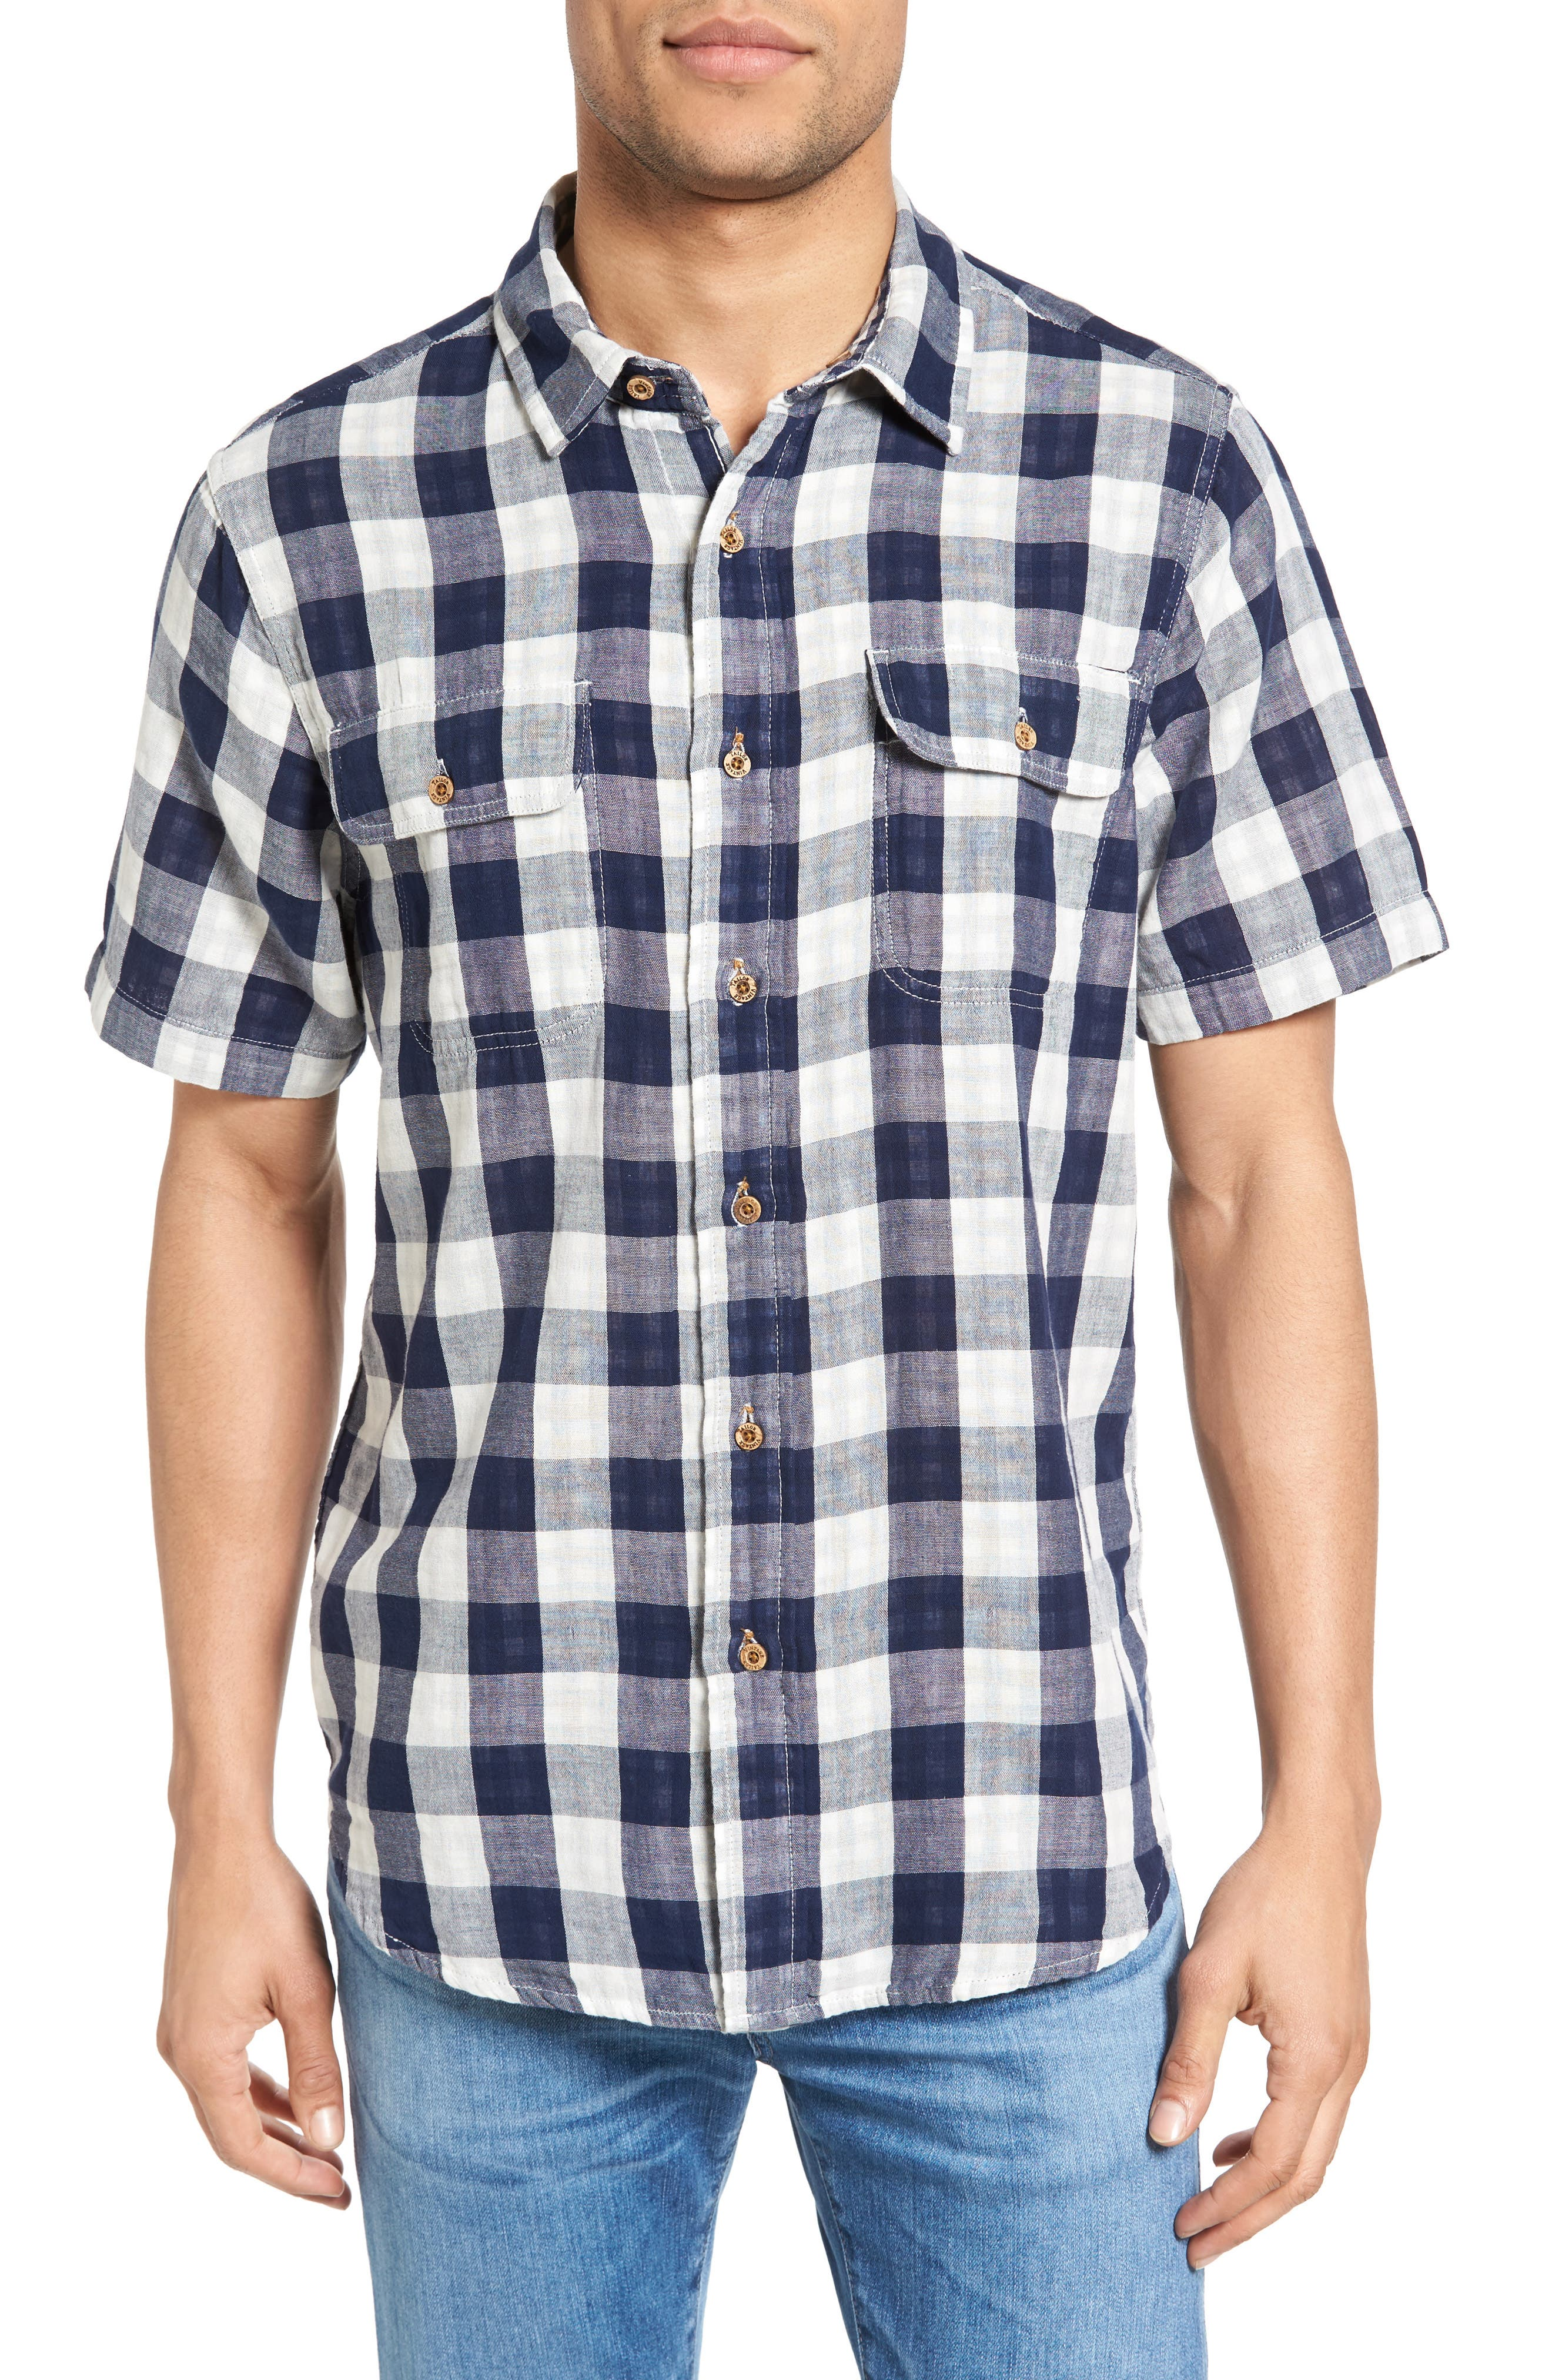 Alternate Image 1 Selected - Tailor Vintage Buffalo Plaid Sport Shirt